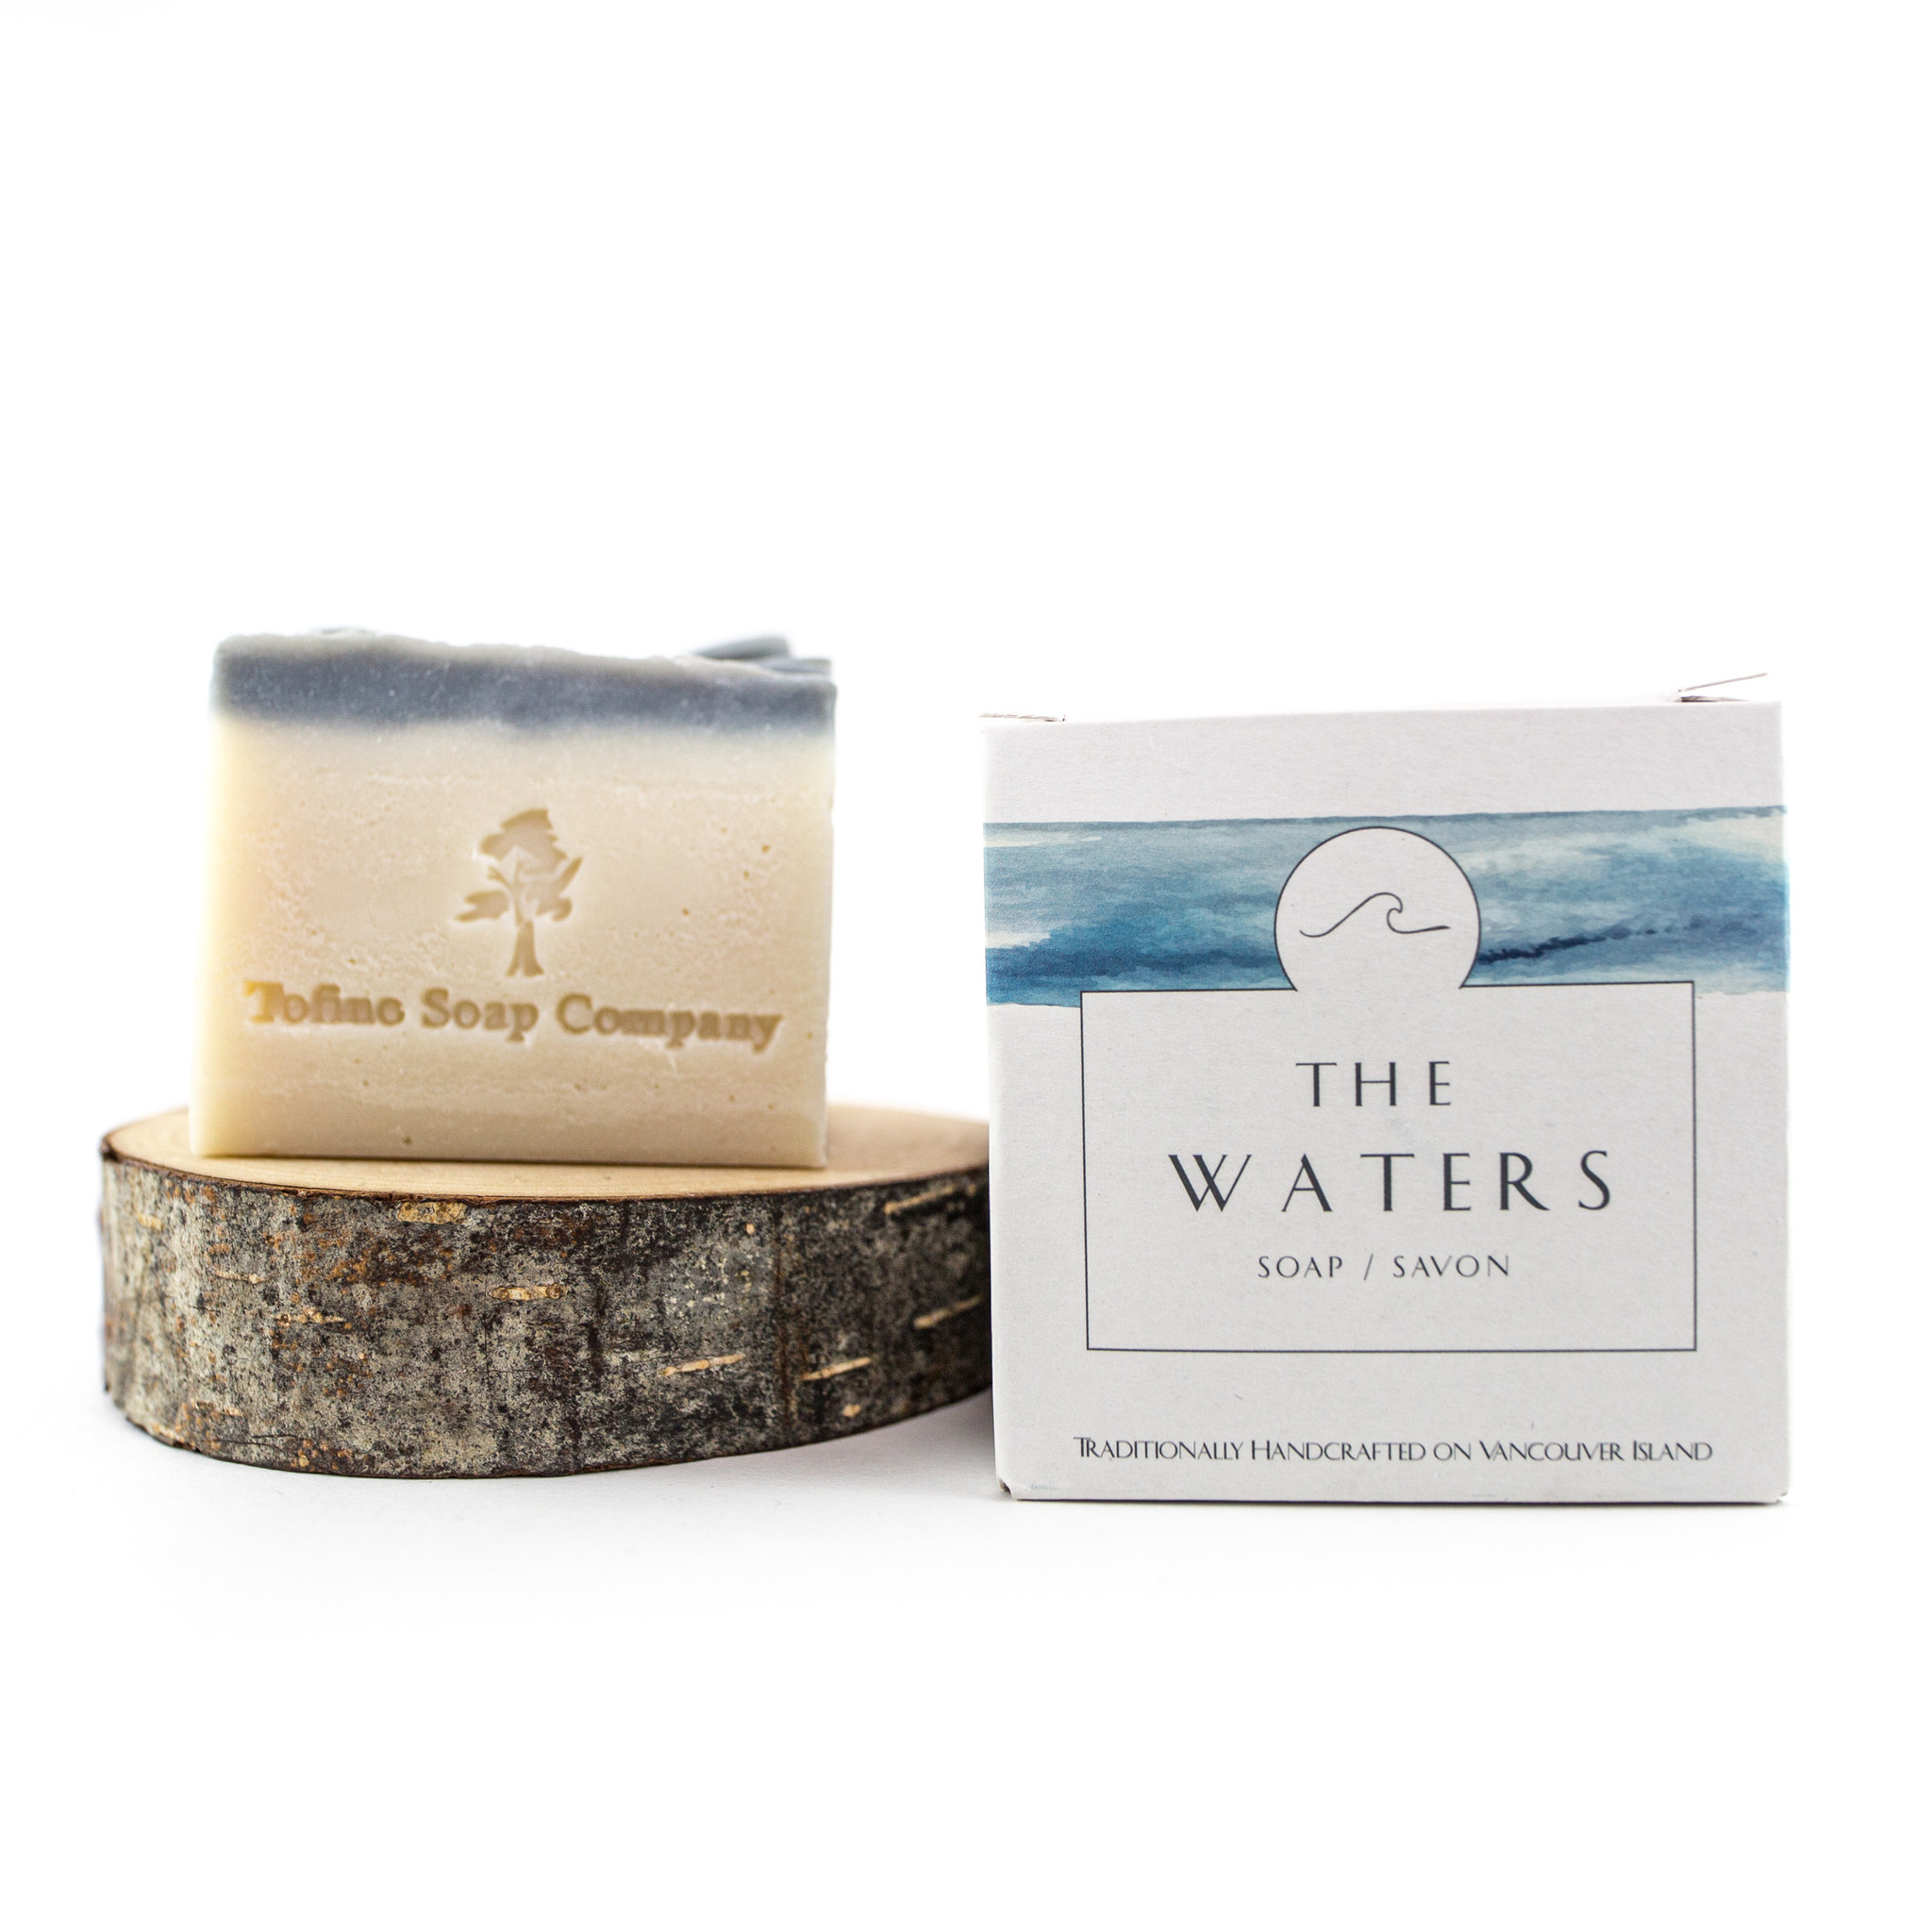 Tofino Soap Company The Waters Soap